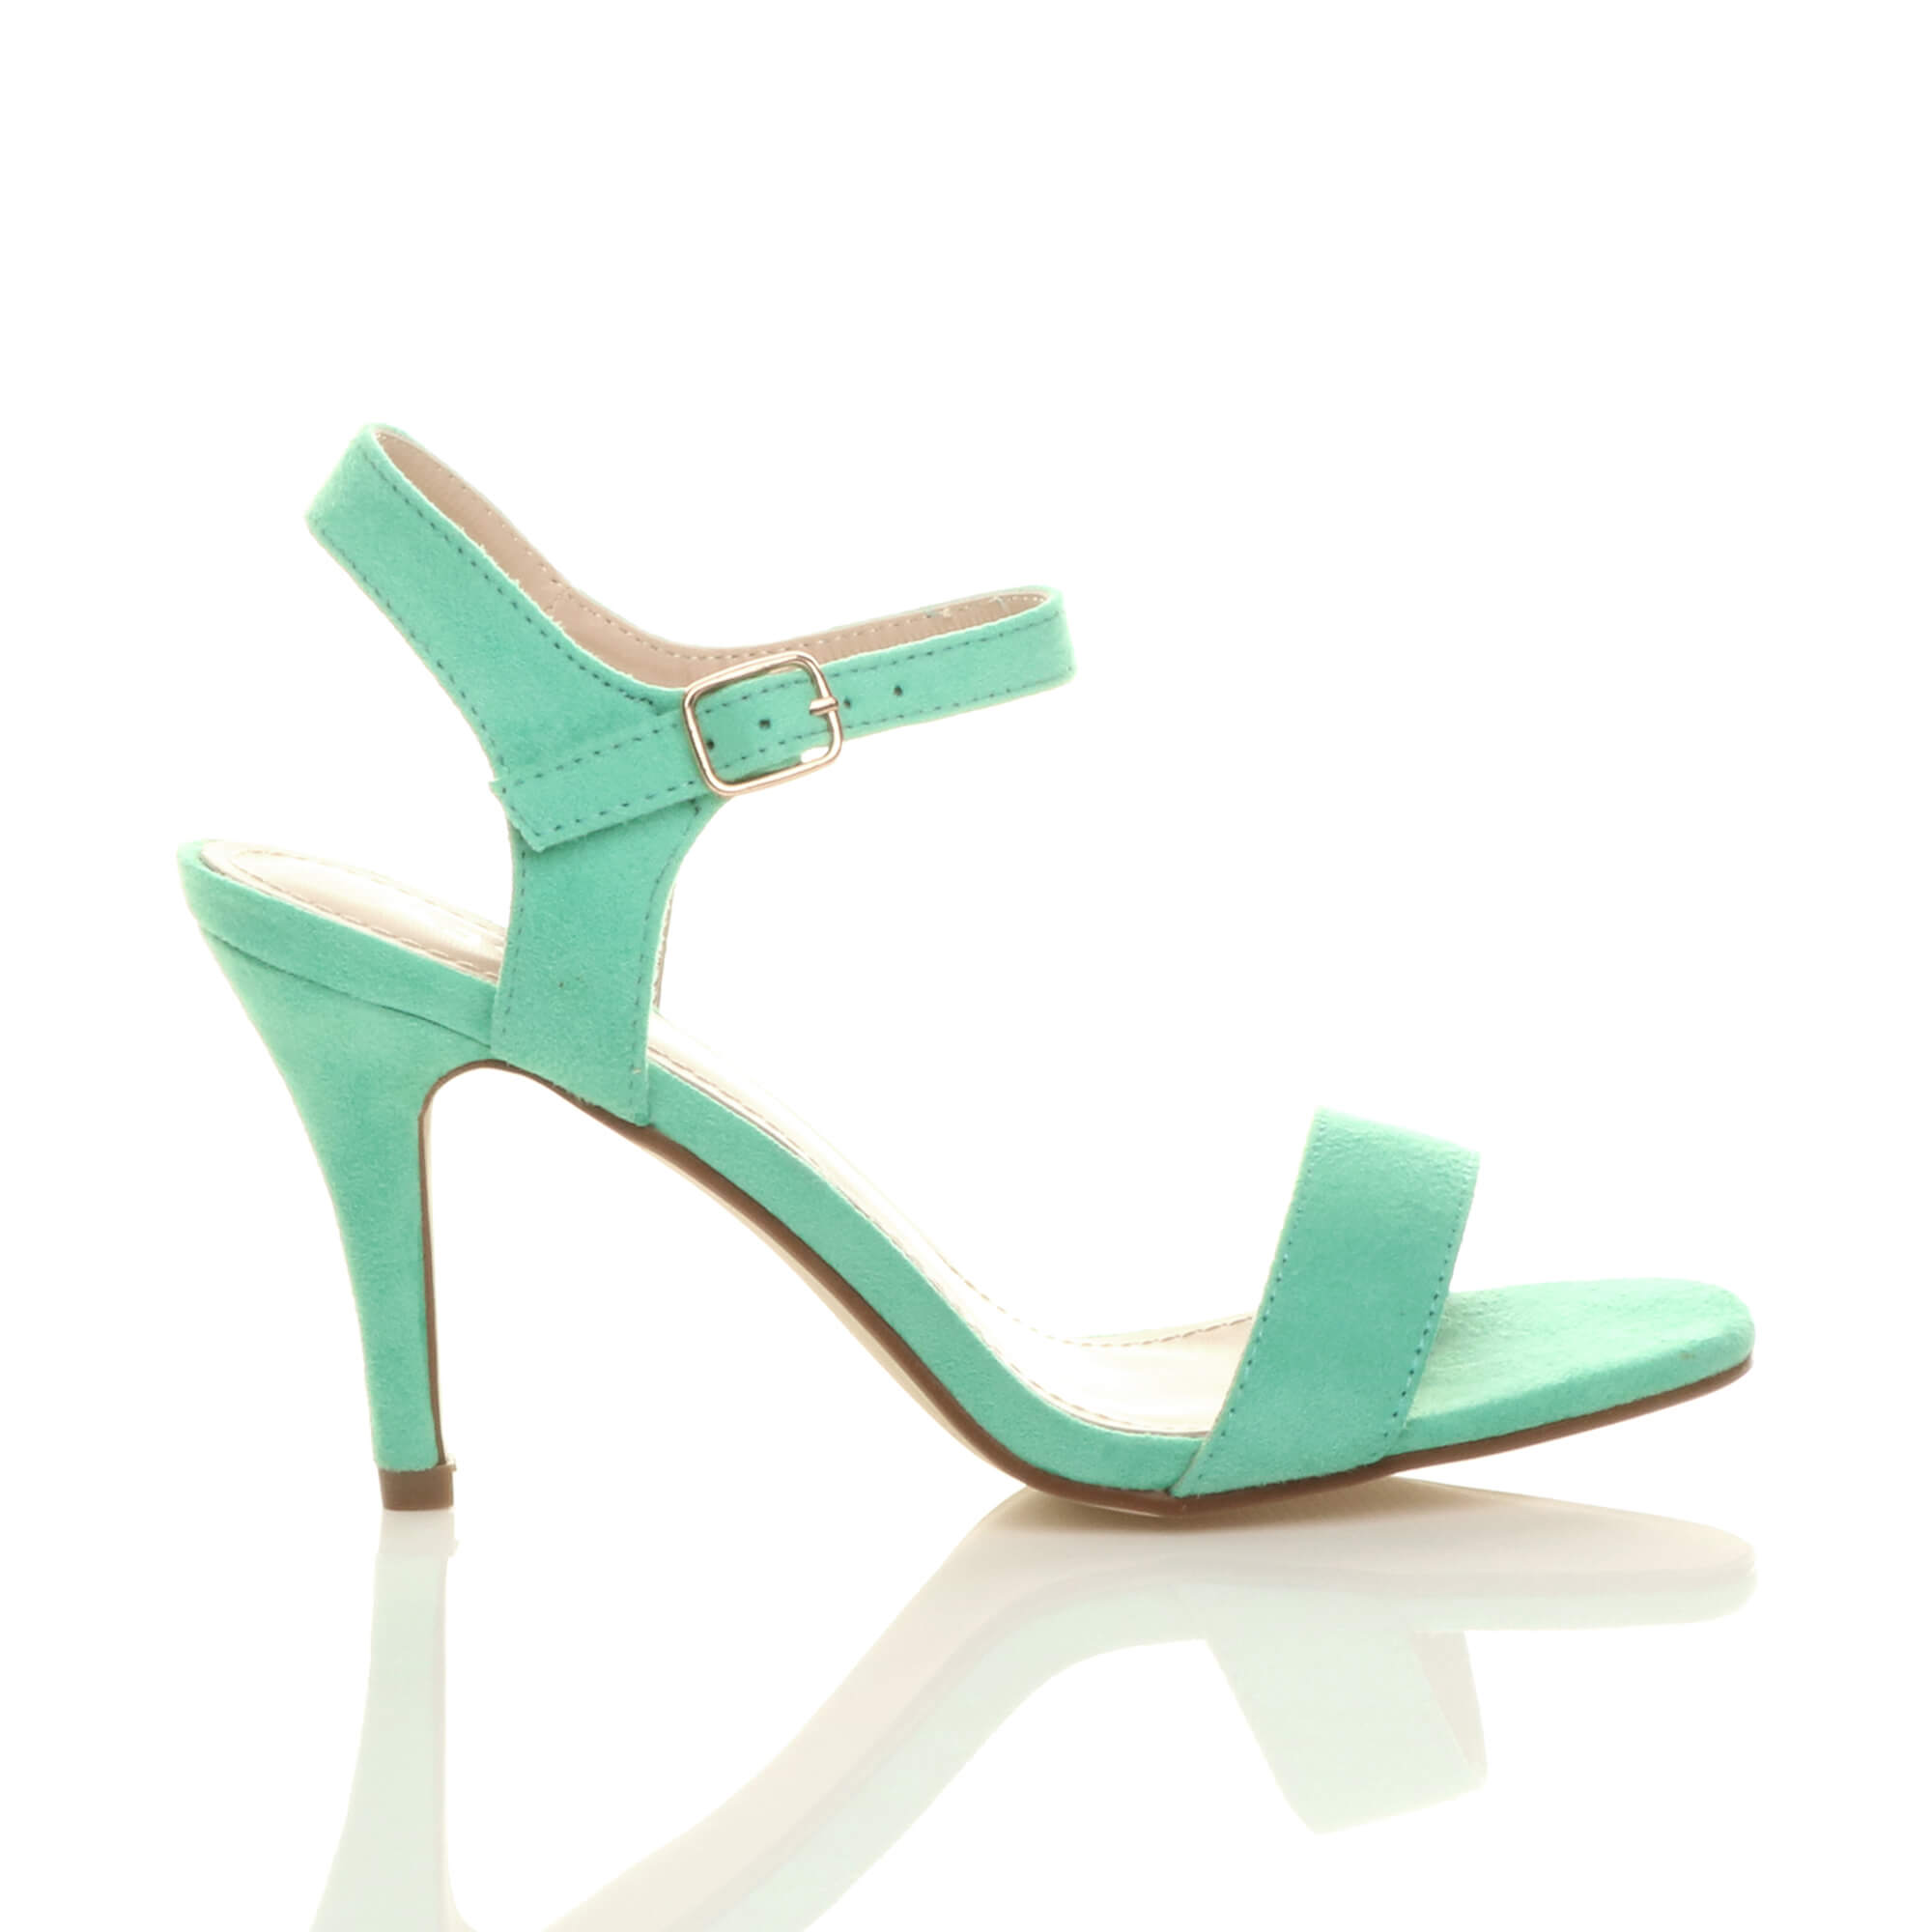 WOMENS-LADIES-HIGH-HEEL-BUCKLE-STRAPPY-BASIC-BARELY-THERE-SANDALS-SHOES-SIZE thumbnail 59